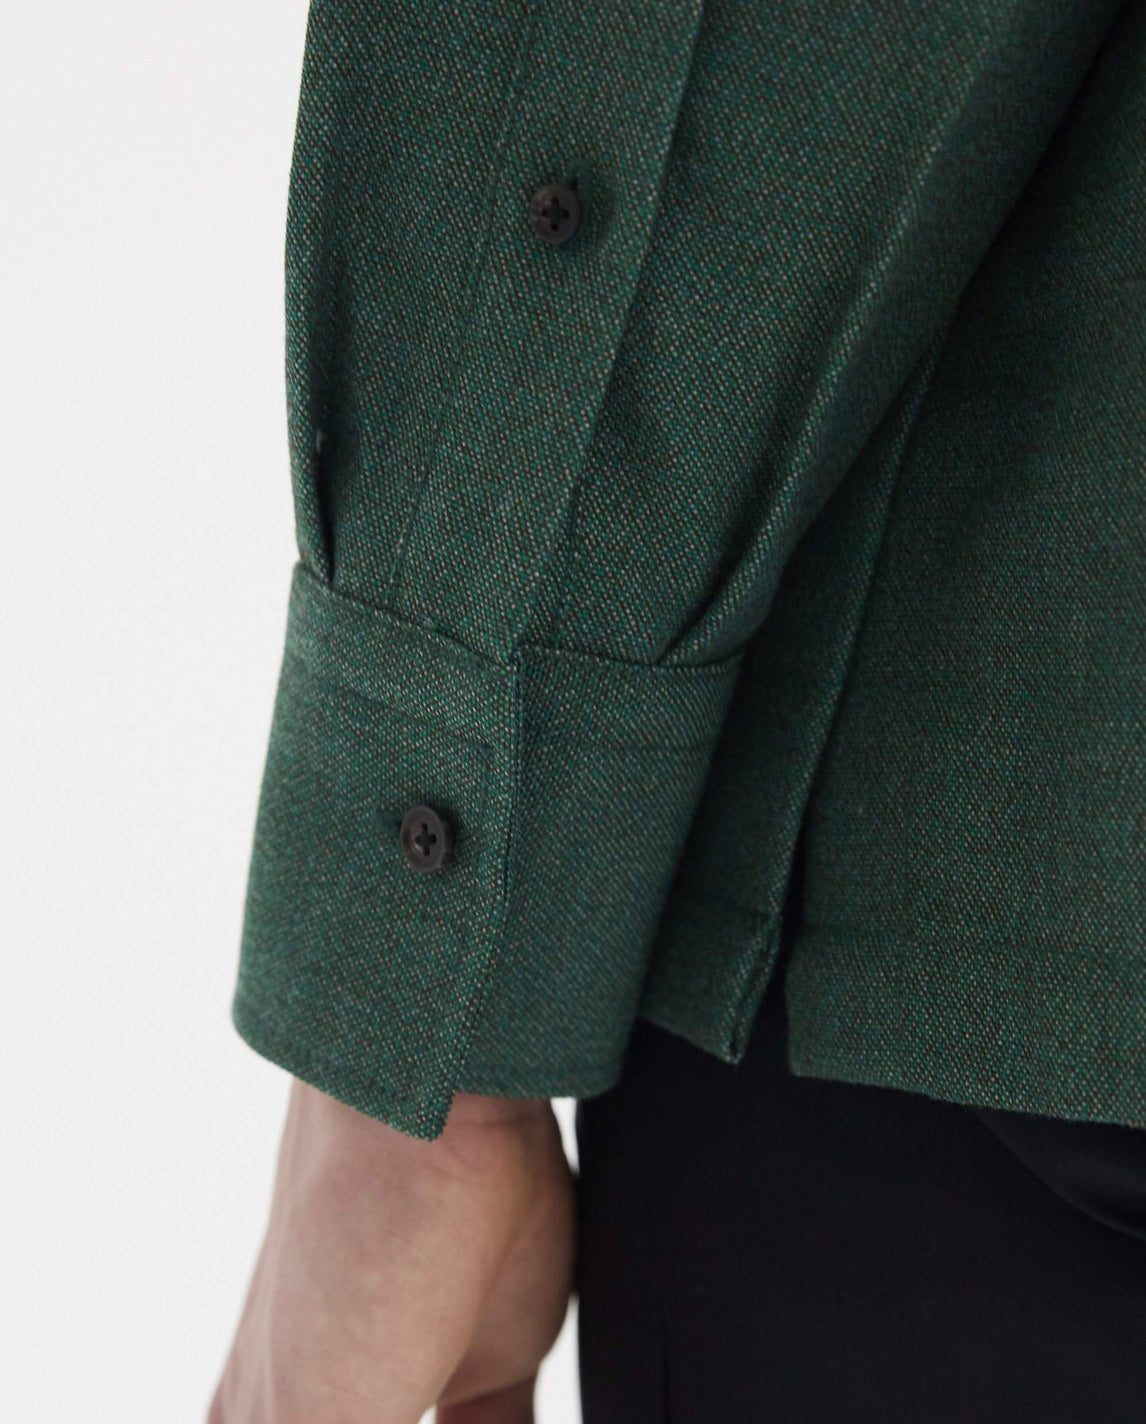 Square Overshirt - Green MENS KARMUEL YOUNG